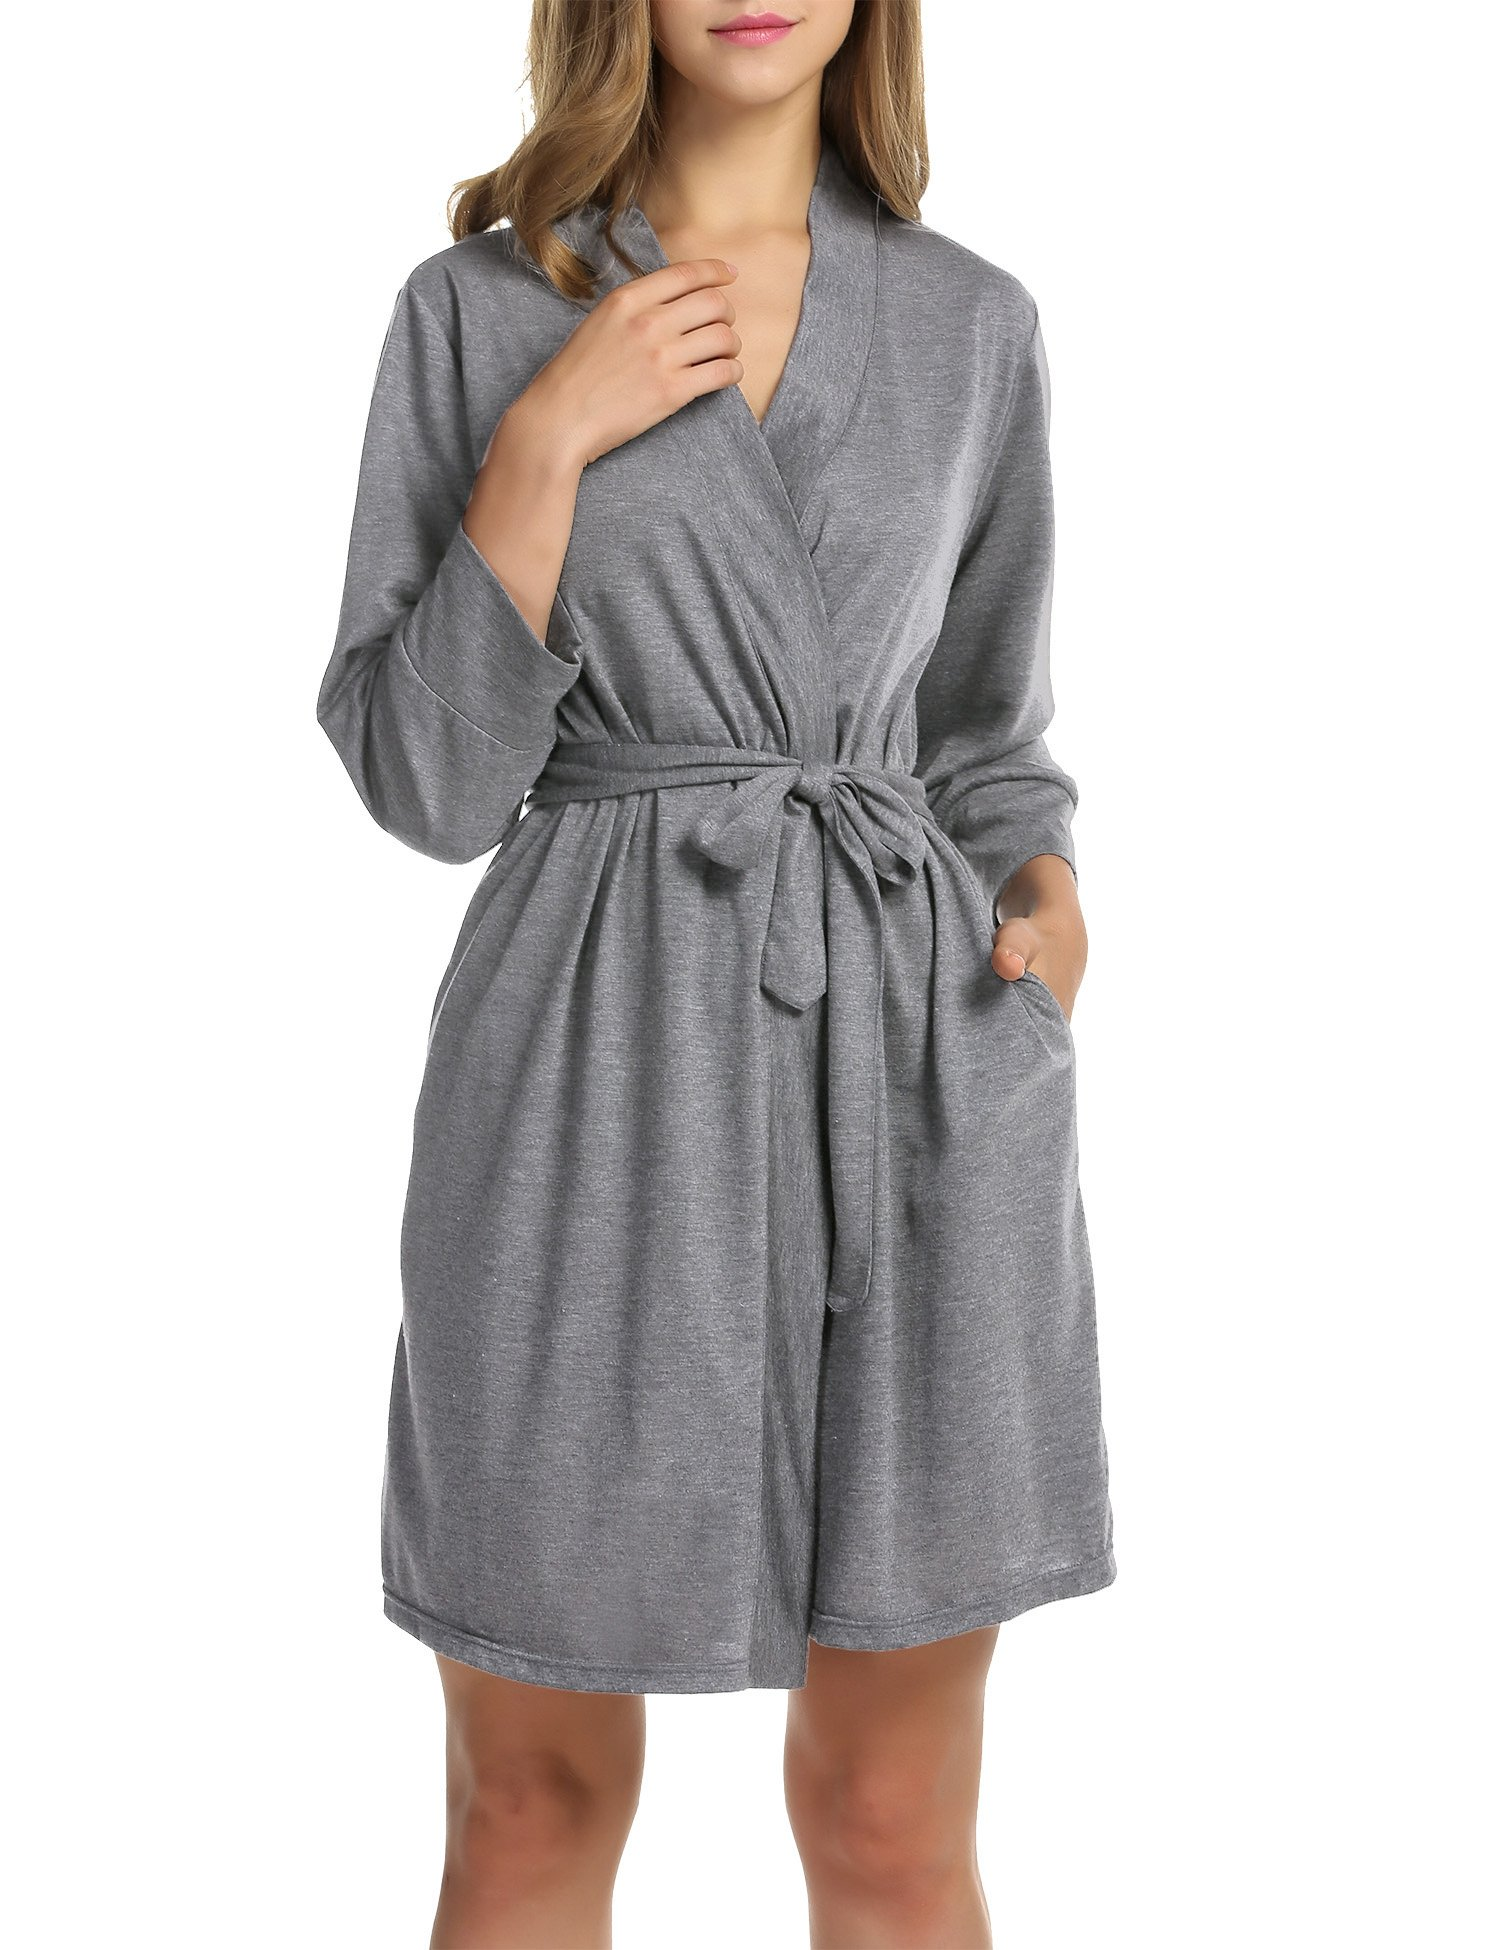 Image of A Customer Favorite: Heather Gray Short Robe for Women - More Colors Available